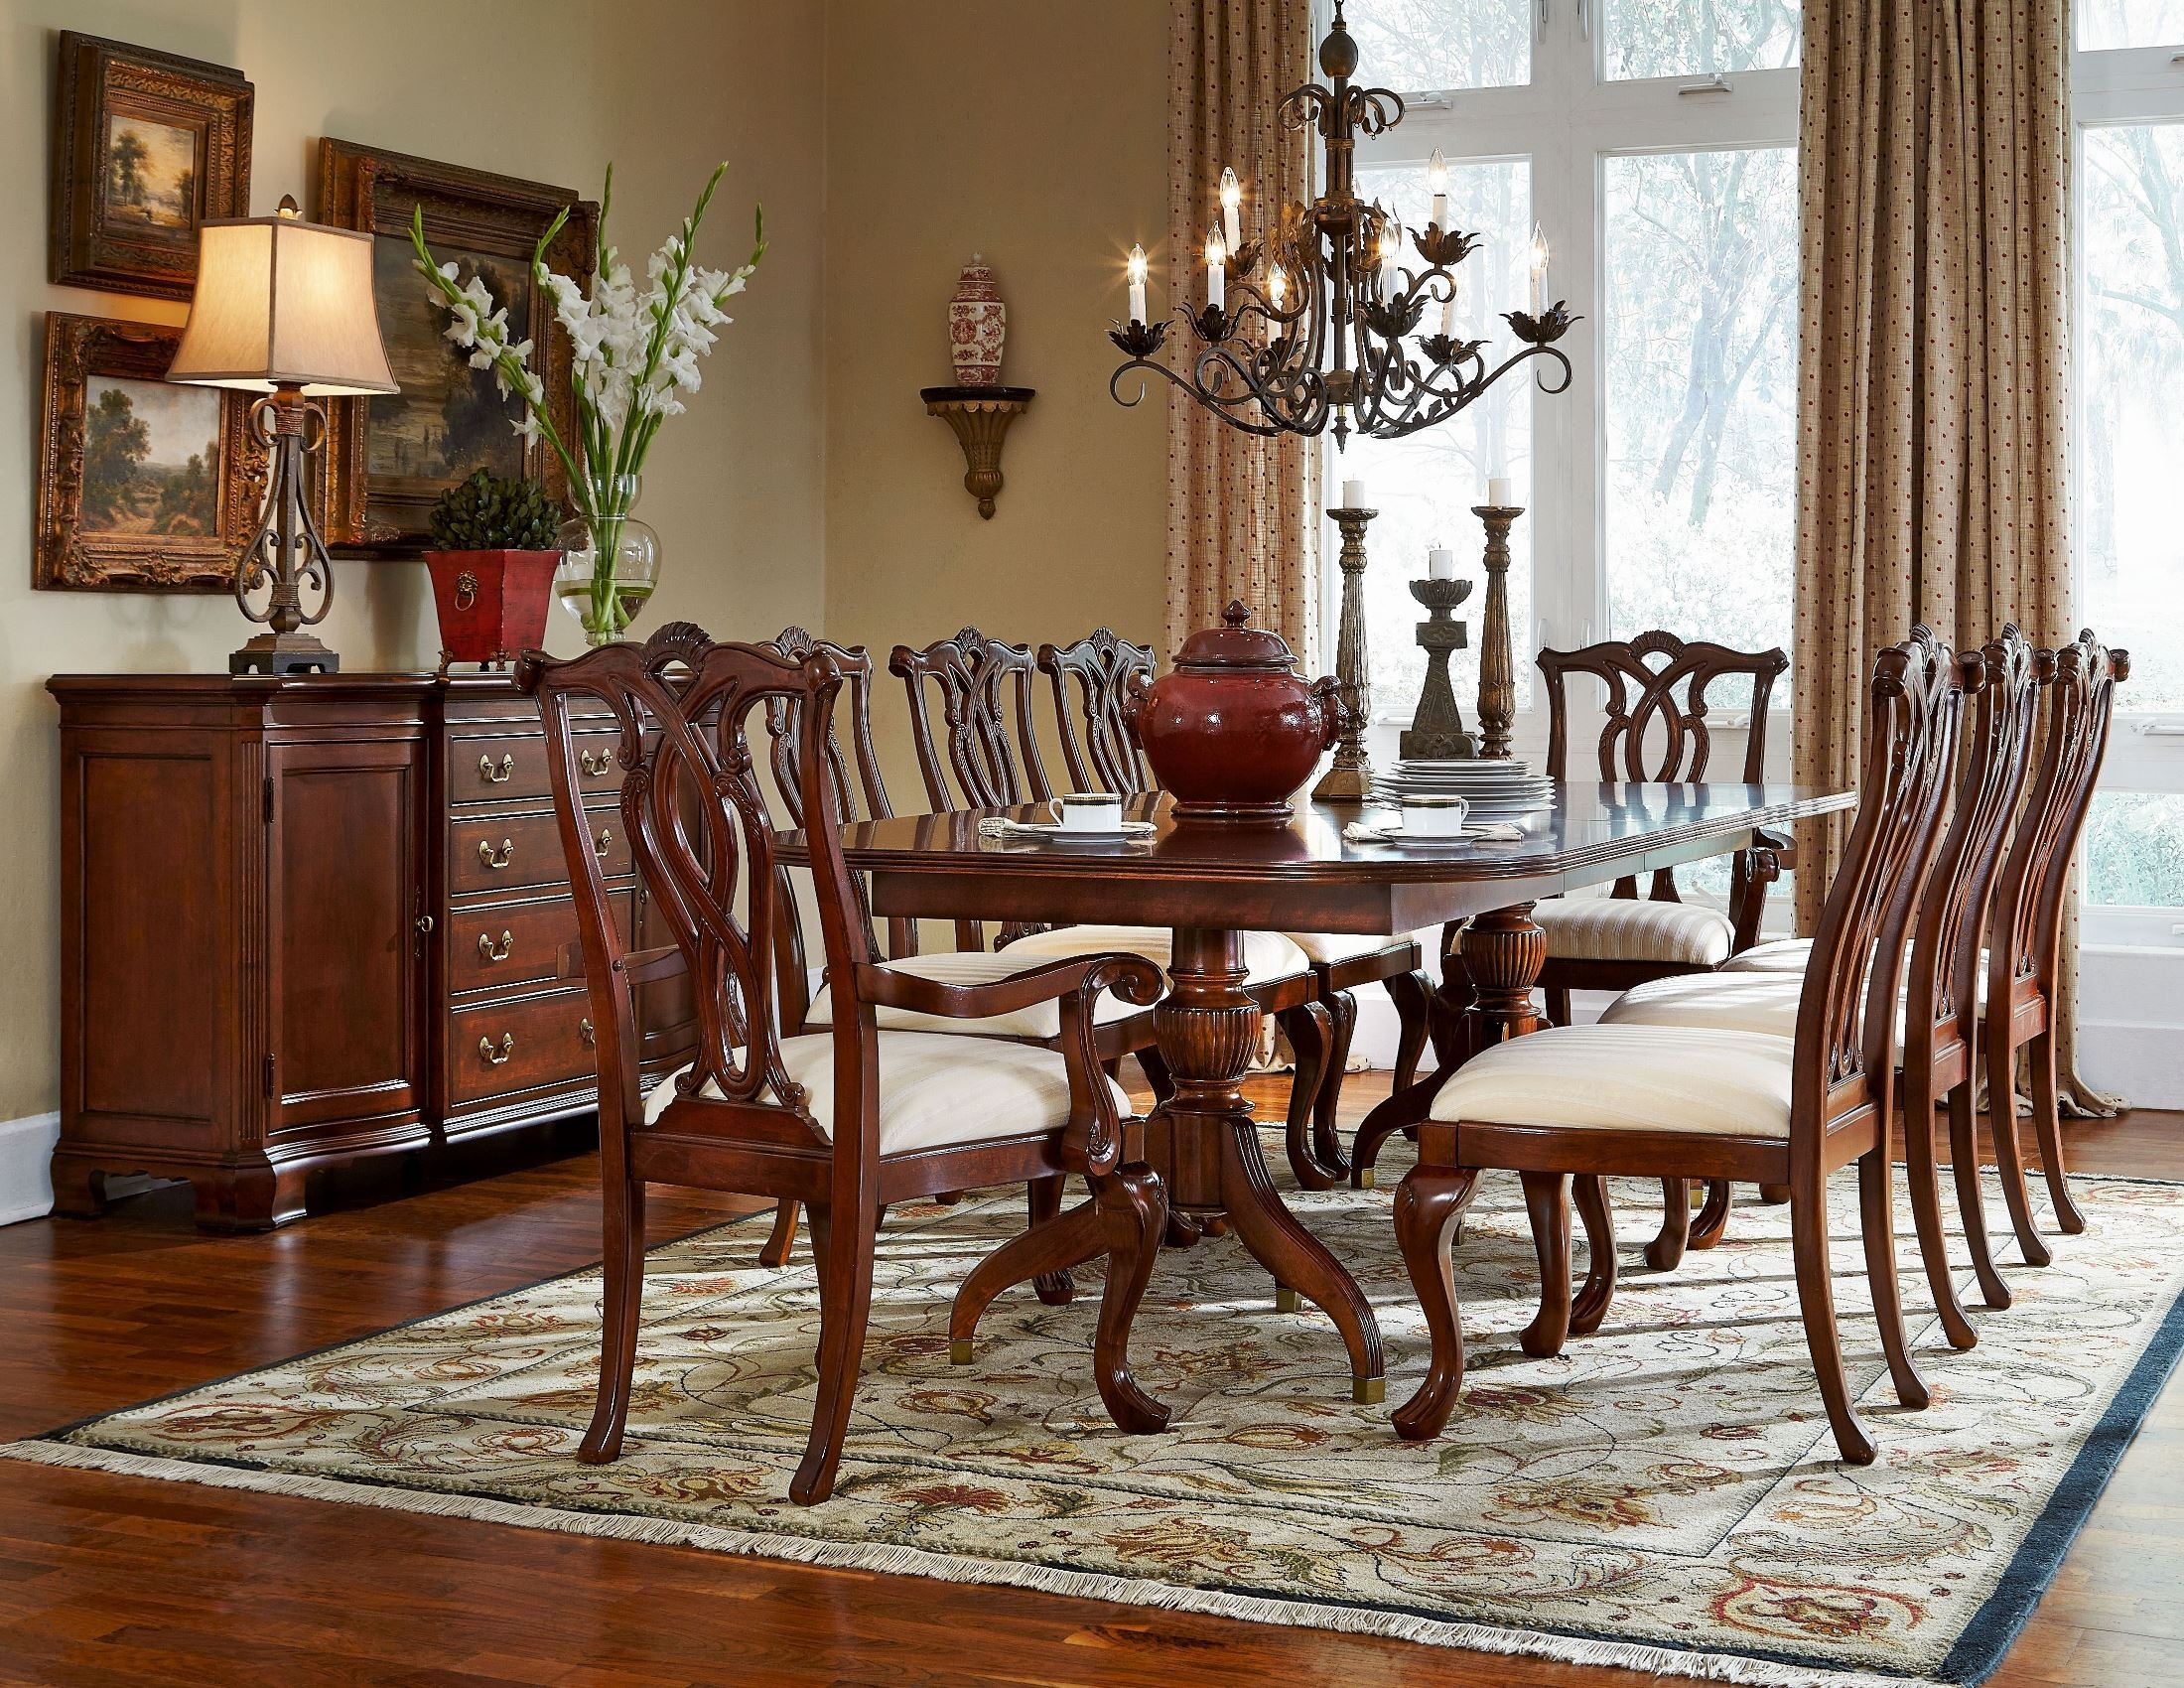 cherry grove classic antique extendable cherry pedestal dining table 792 744r american drew. Black Bedroom Furniture Sets. Home Design Ideas